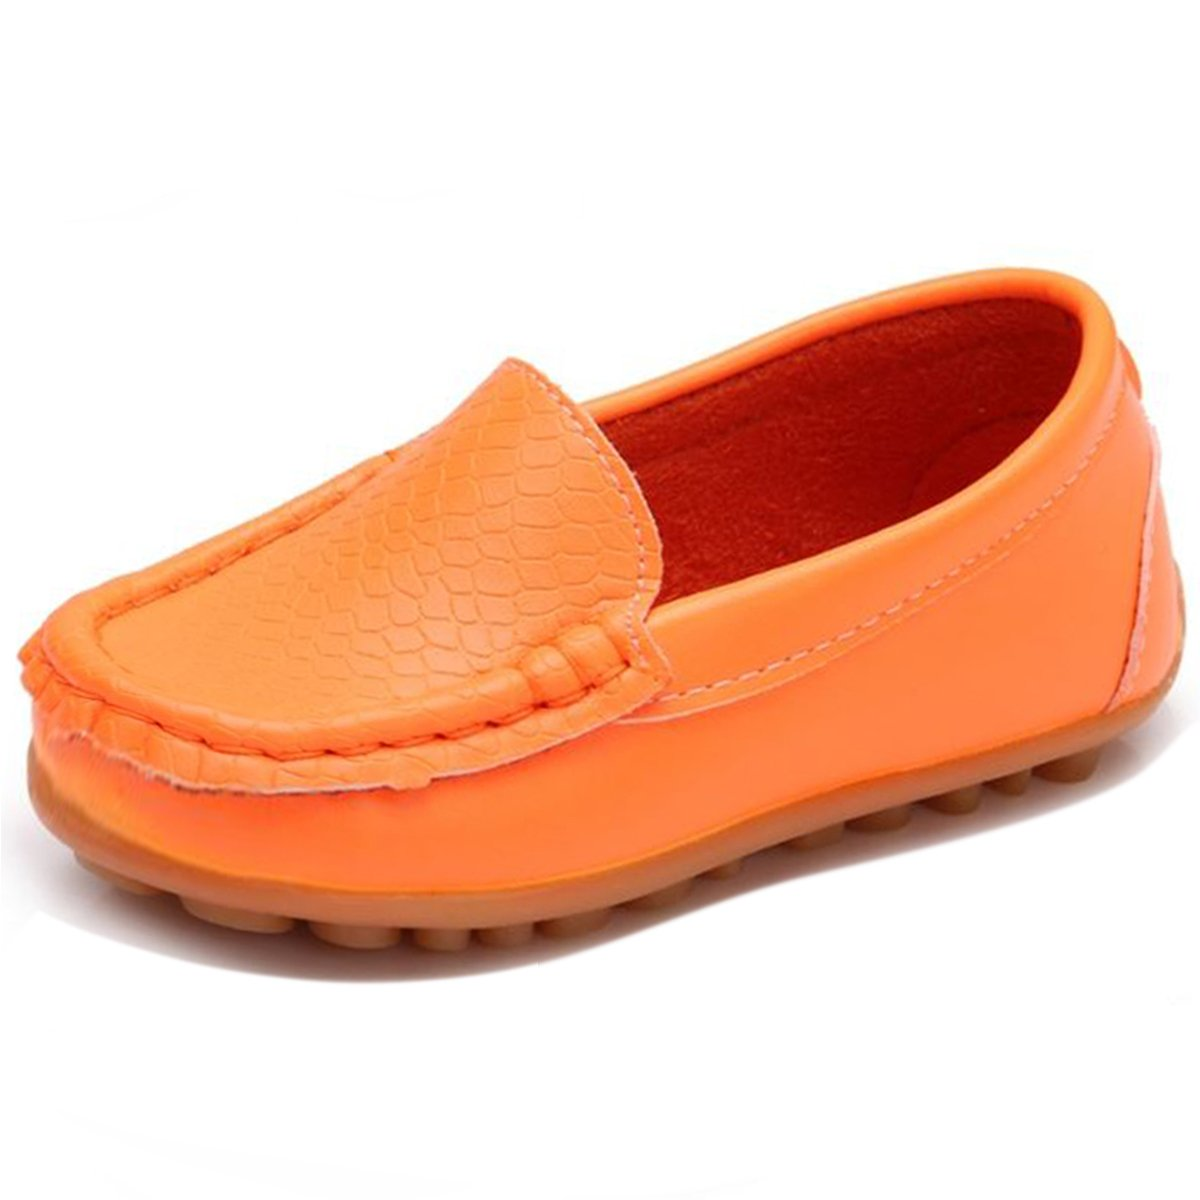 L-RUN Boys Girls Leather Loafers Slip on Boat Dress Shoes Flat 9.5 M US Toddler